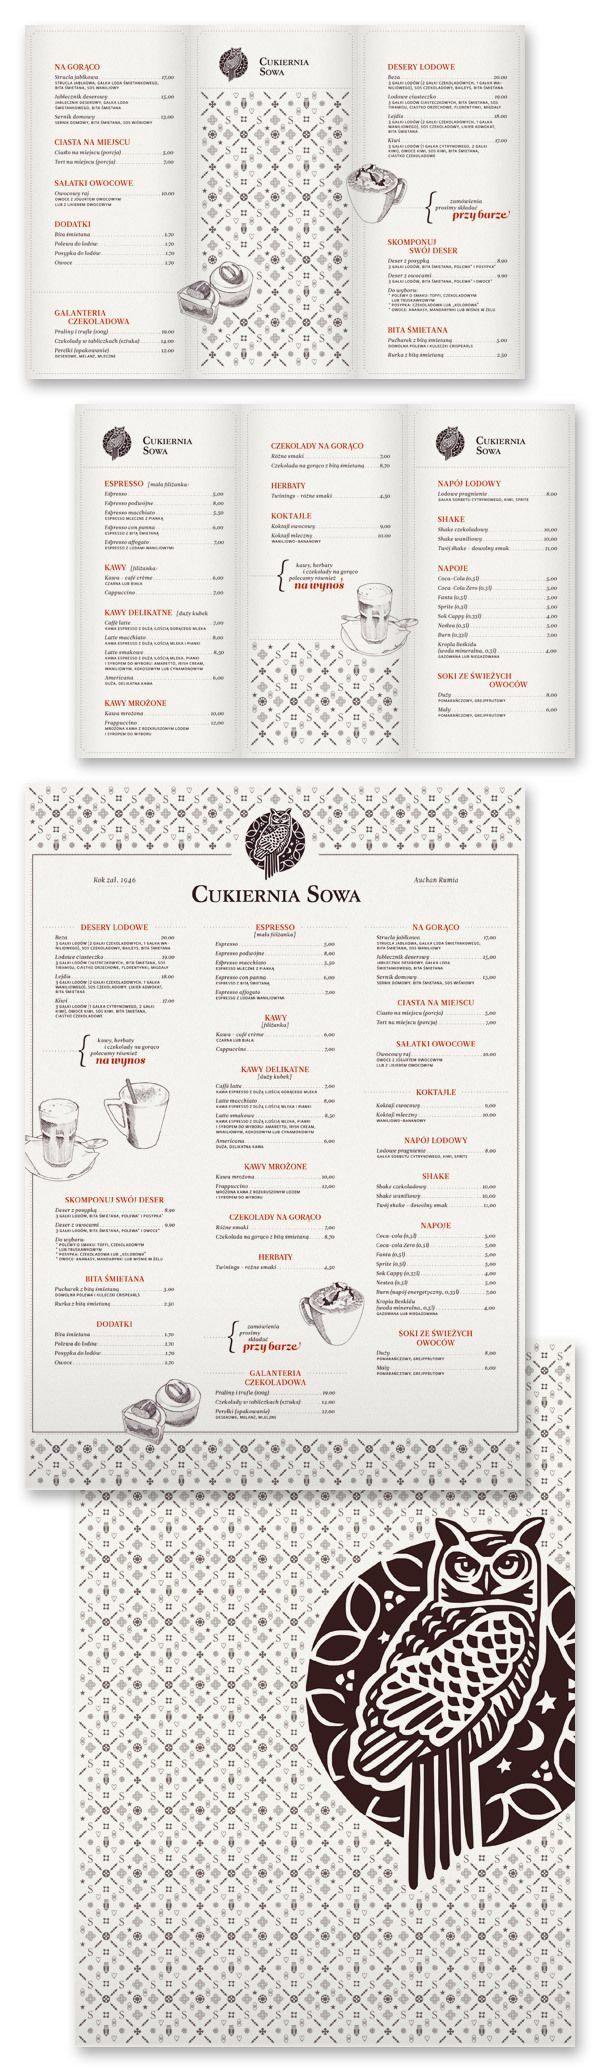 22 best menus images on Pinterest | Graphics, Menu cards and ...